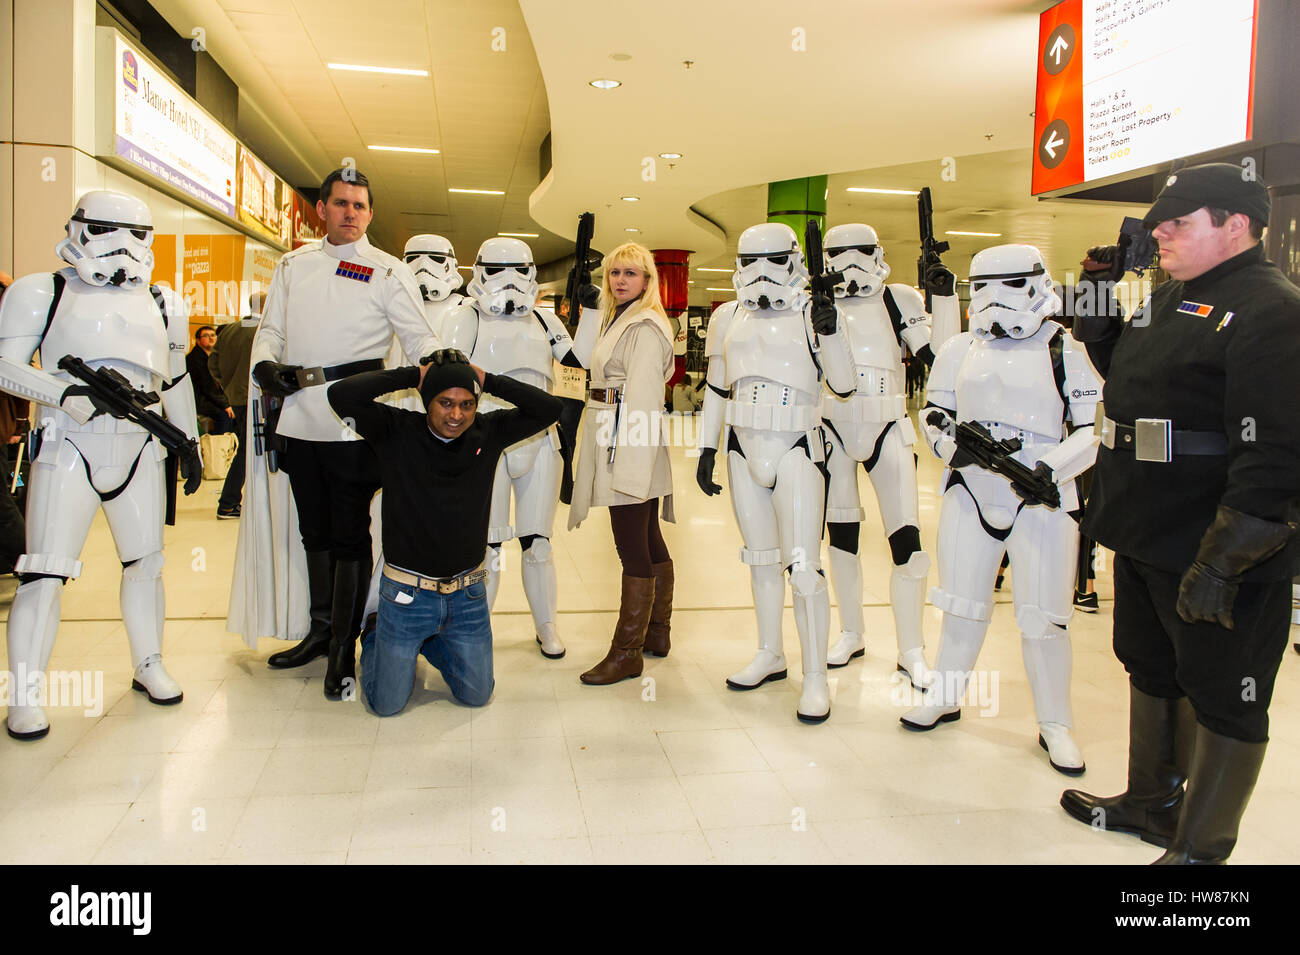 Birmingham NEC, UK. 18 Mar, 2017.  The sci-fi convention, Comic Con, takes place on the 18th and 19th March at the Stock Photo